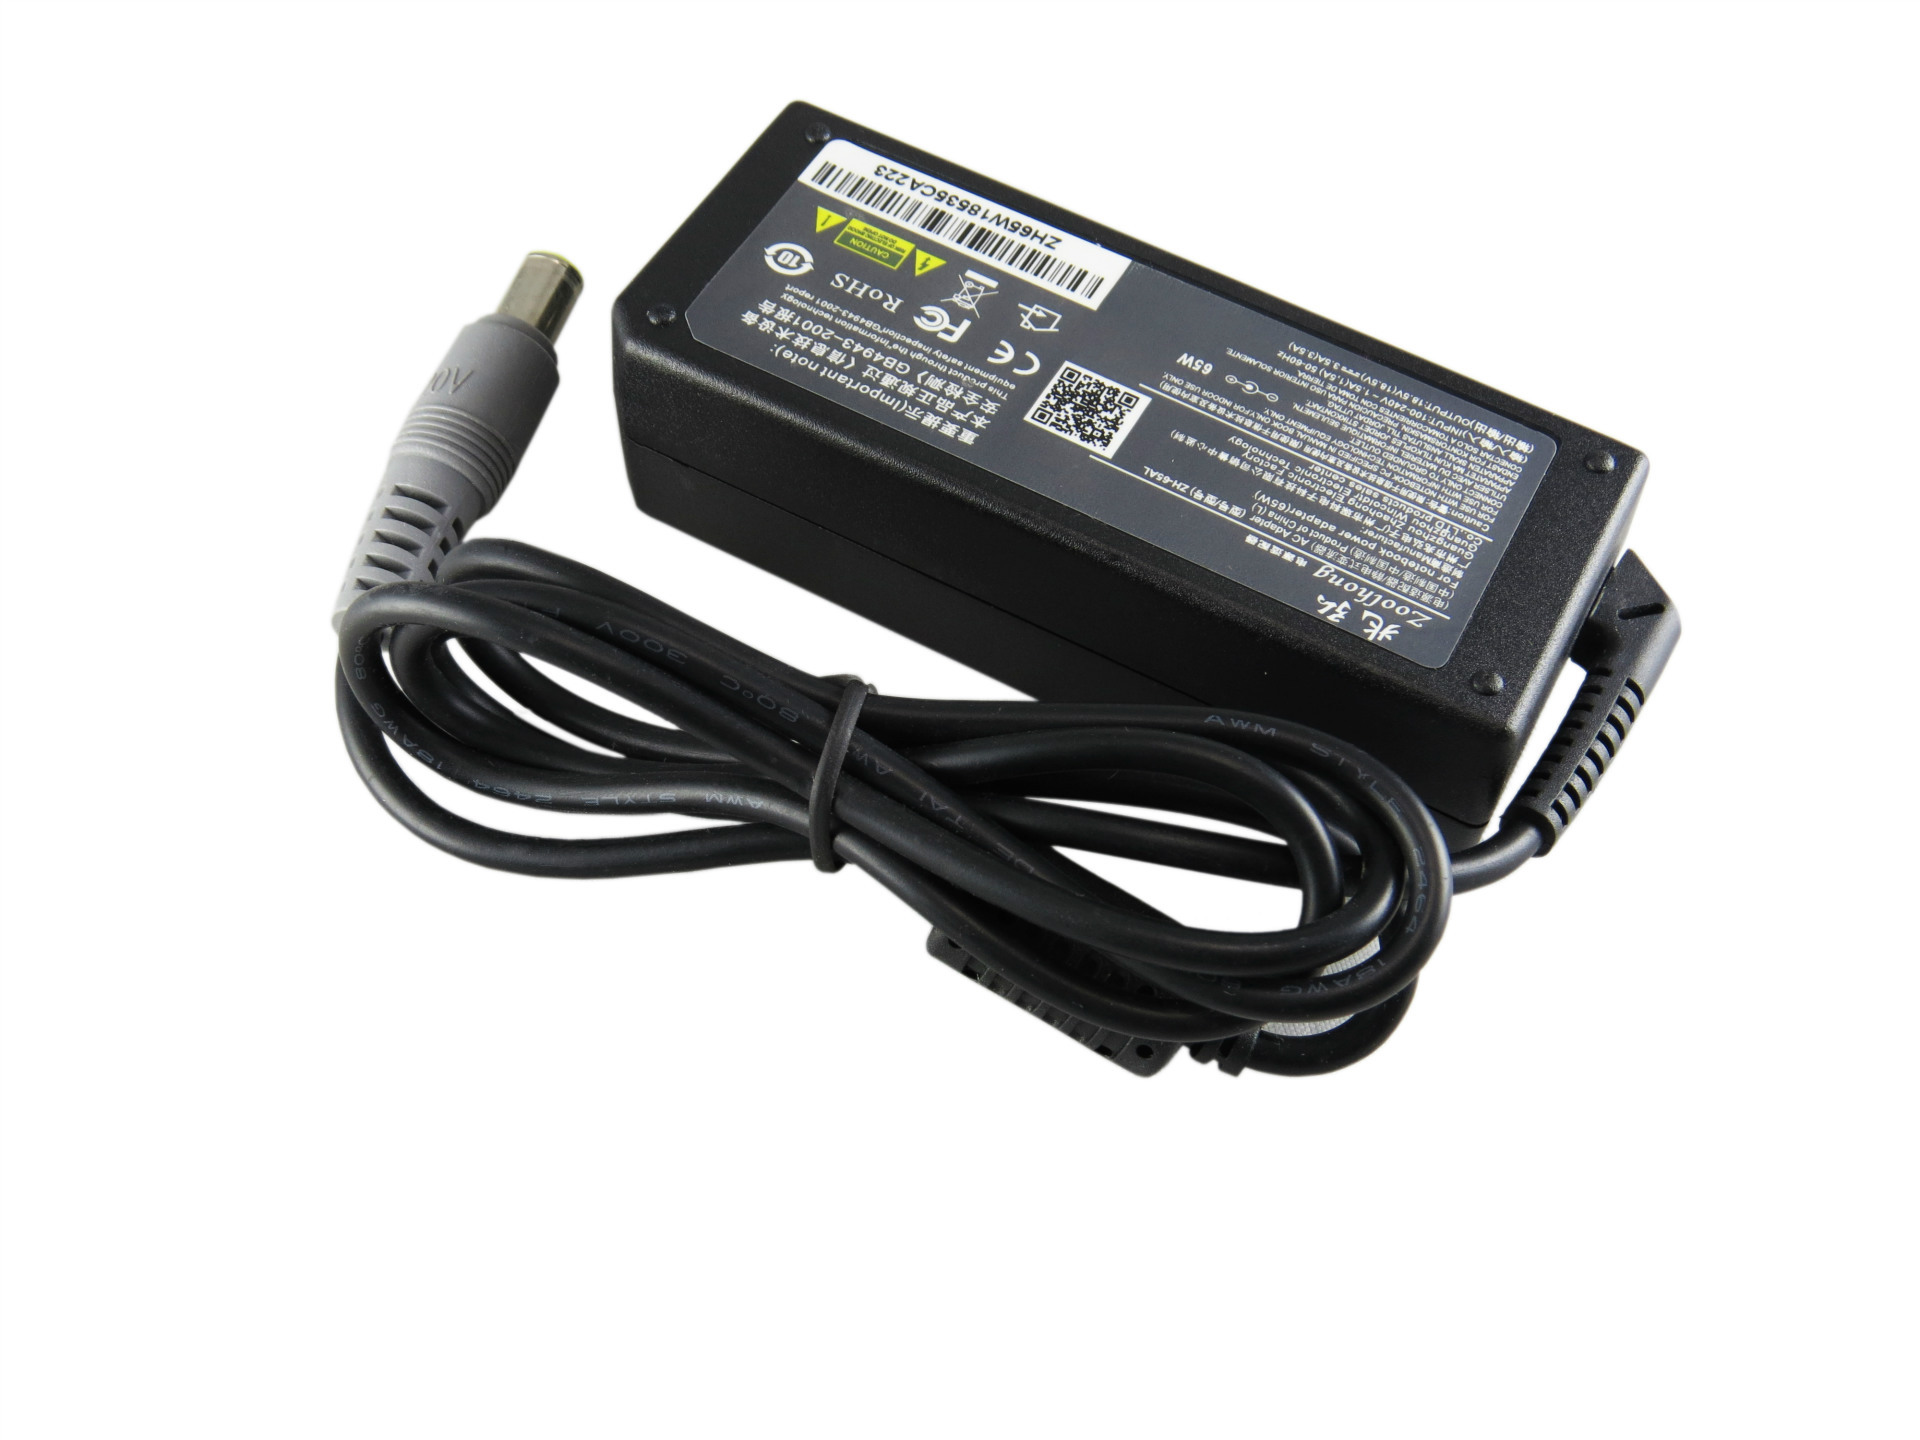 20 V 4.5A 90 W Laptop Ac Power Adapter Charger Untuk Lenovo R61 R61E T60 T61 X61 Sl400 X200 T410 8.0 Mm * 5.5 Mm